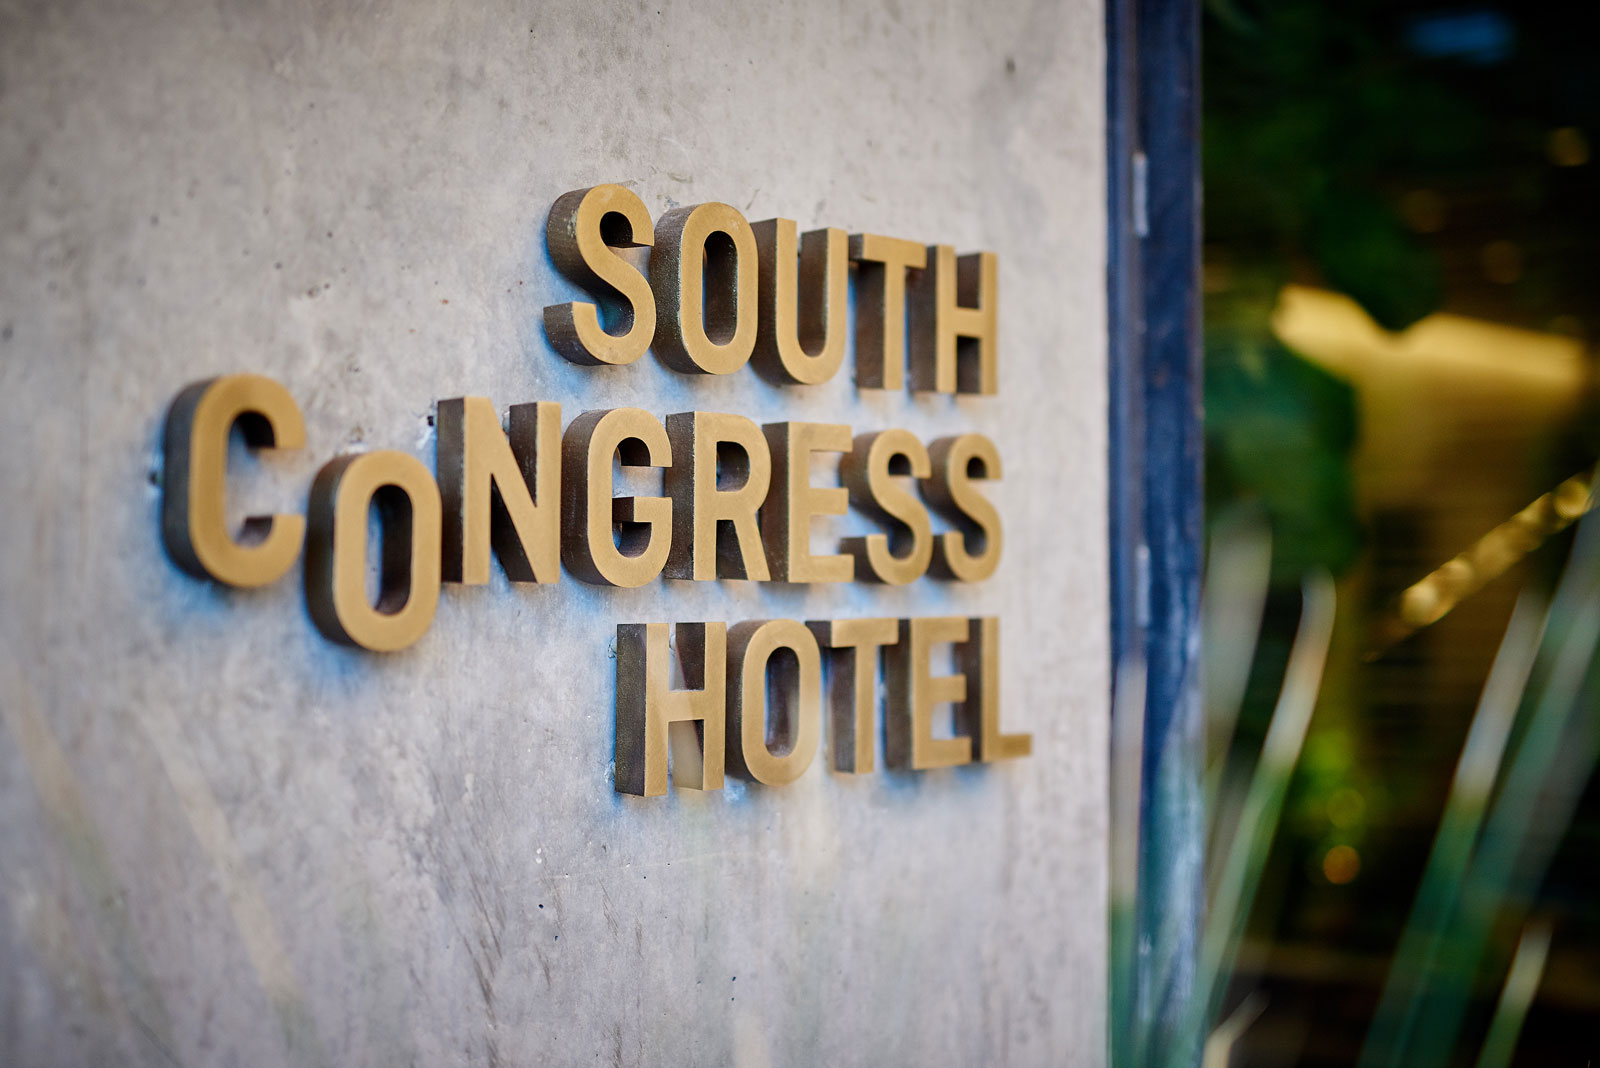 South Congress Hotel sign